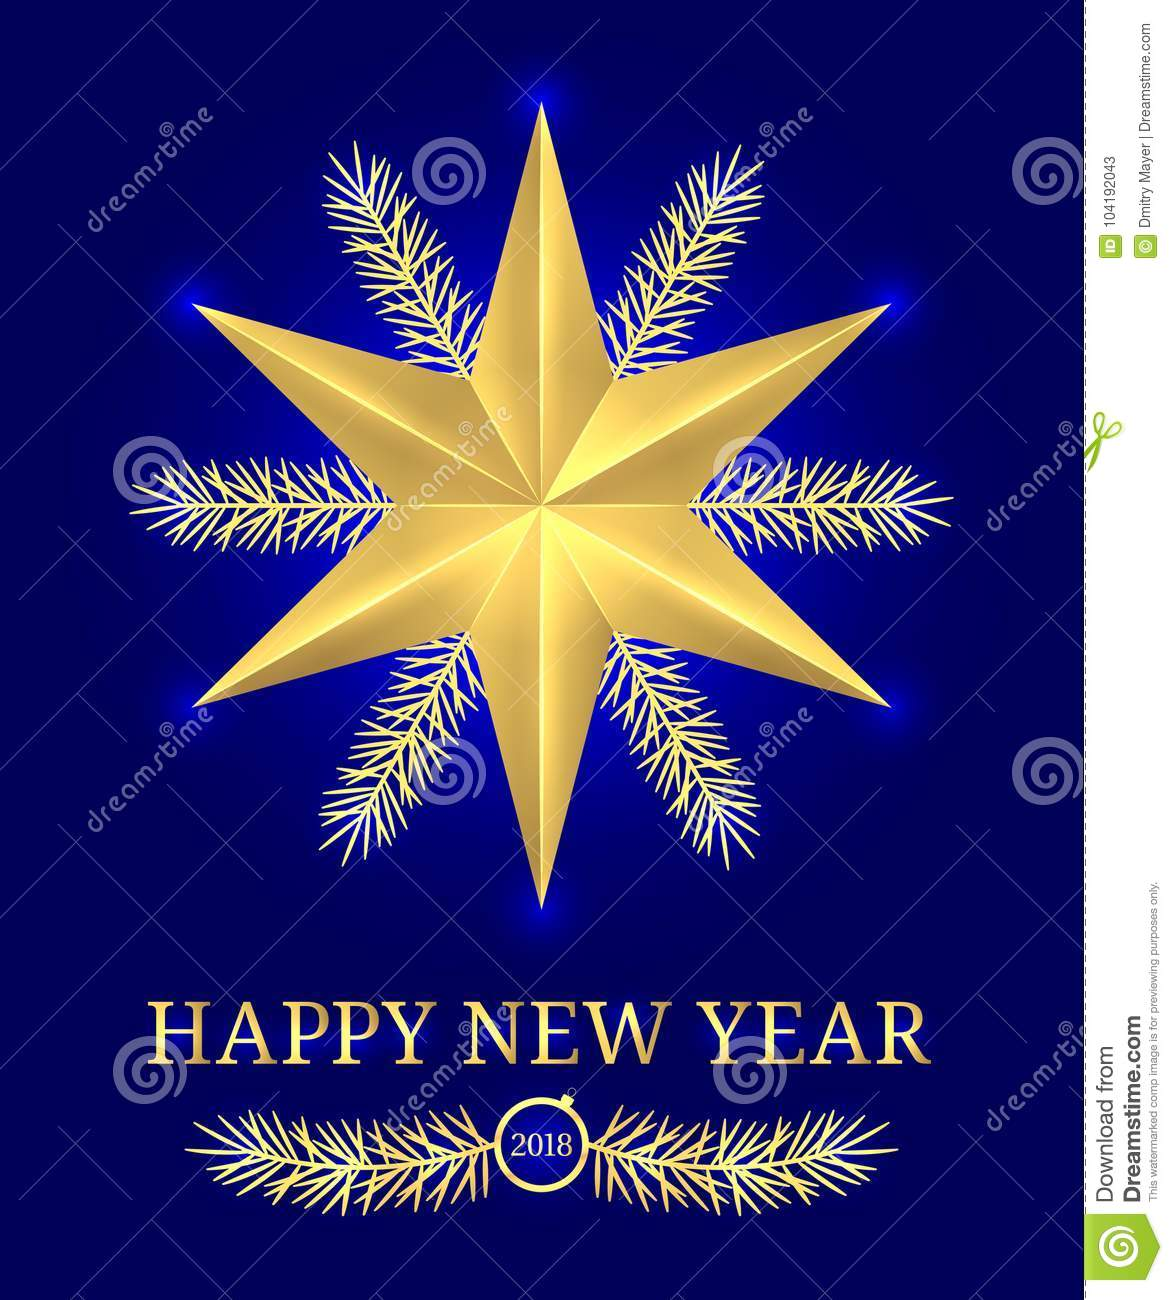 download happy new year 2018 vector holiday banner stock vector illustration of golden